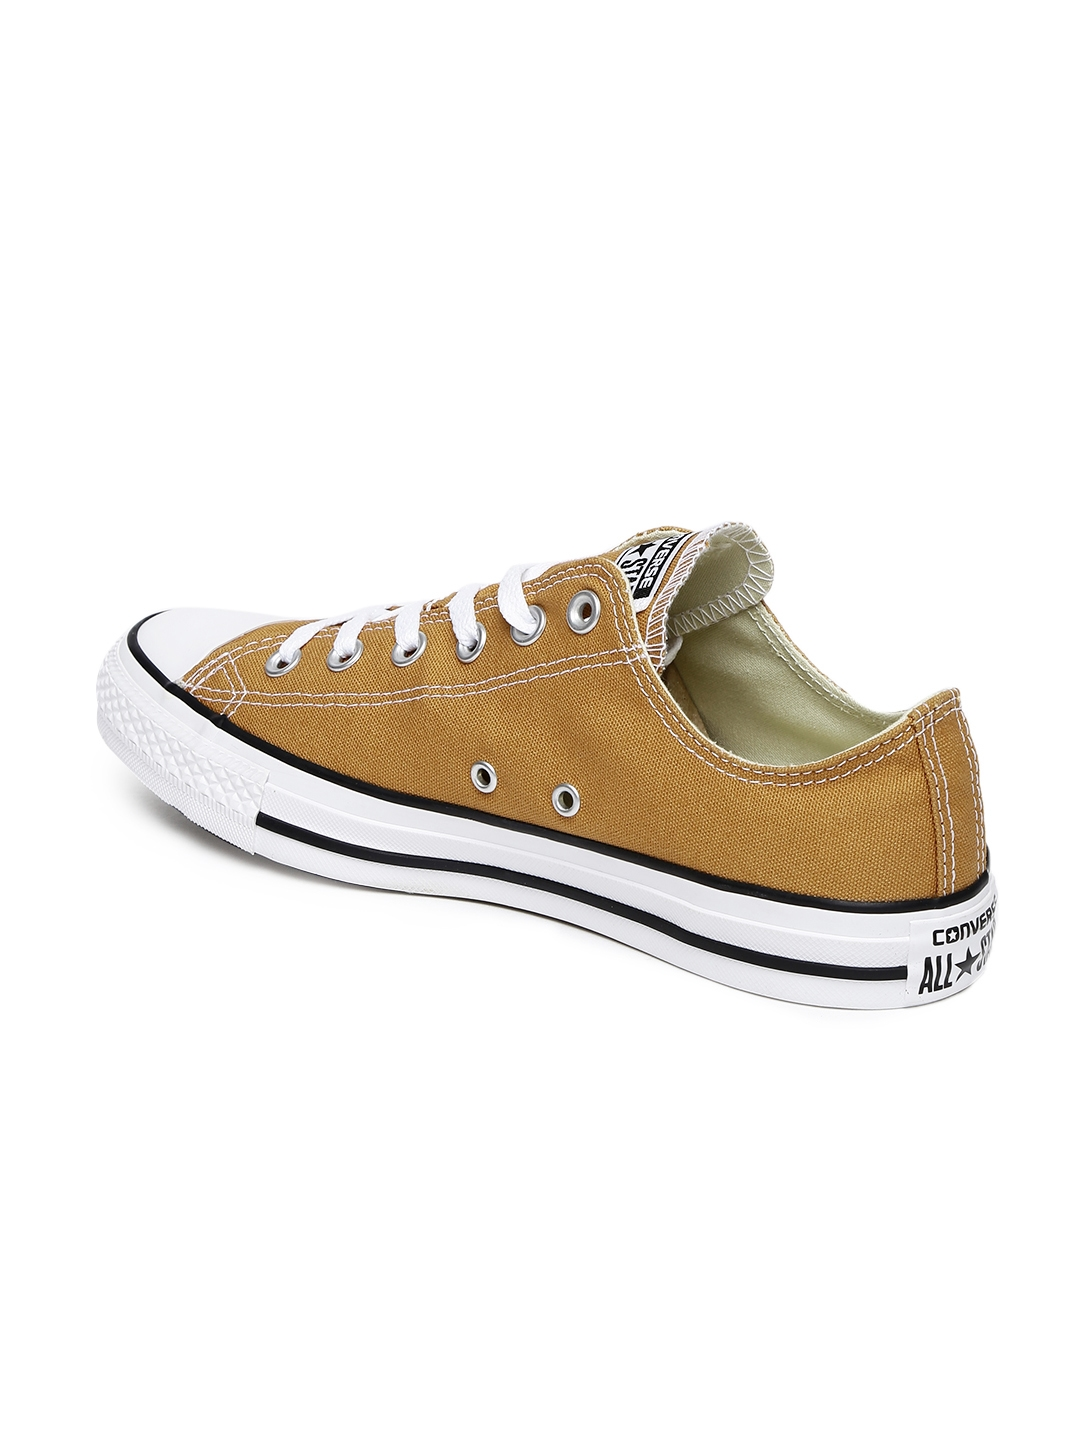 1297e05d1630dd Buy Converse Unisex Brown Sneakers - Casual Shoes for Unisex 2289819 ...